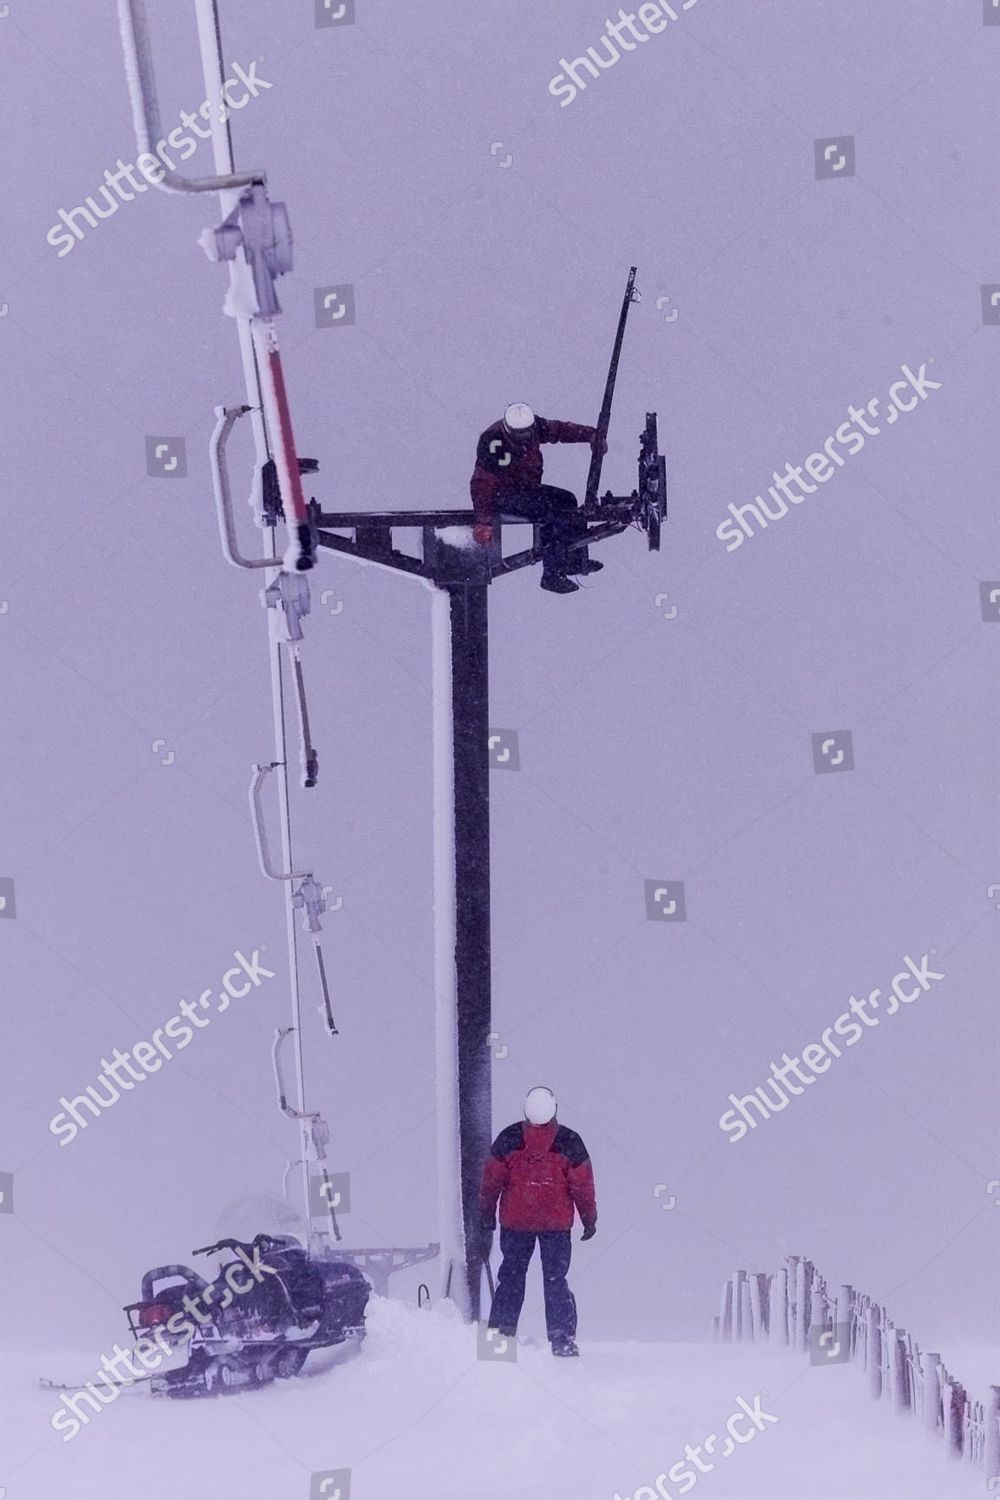 Engineers Repair The Ski Chair Lift On Cairn Gorm Mountain Today After  Yesterdays Gale Force Winds